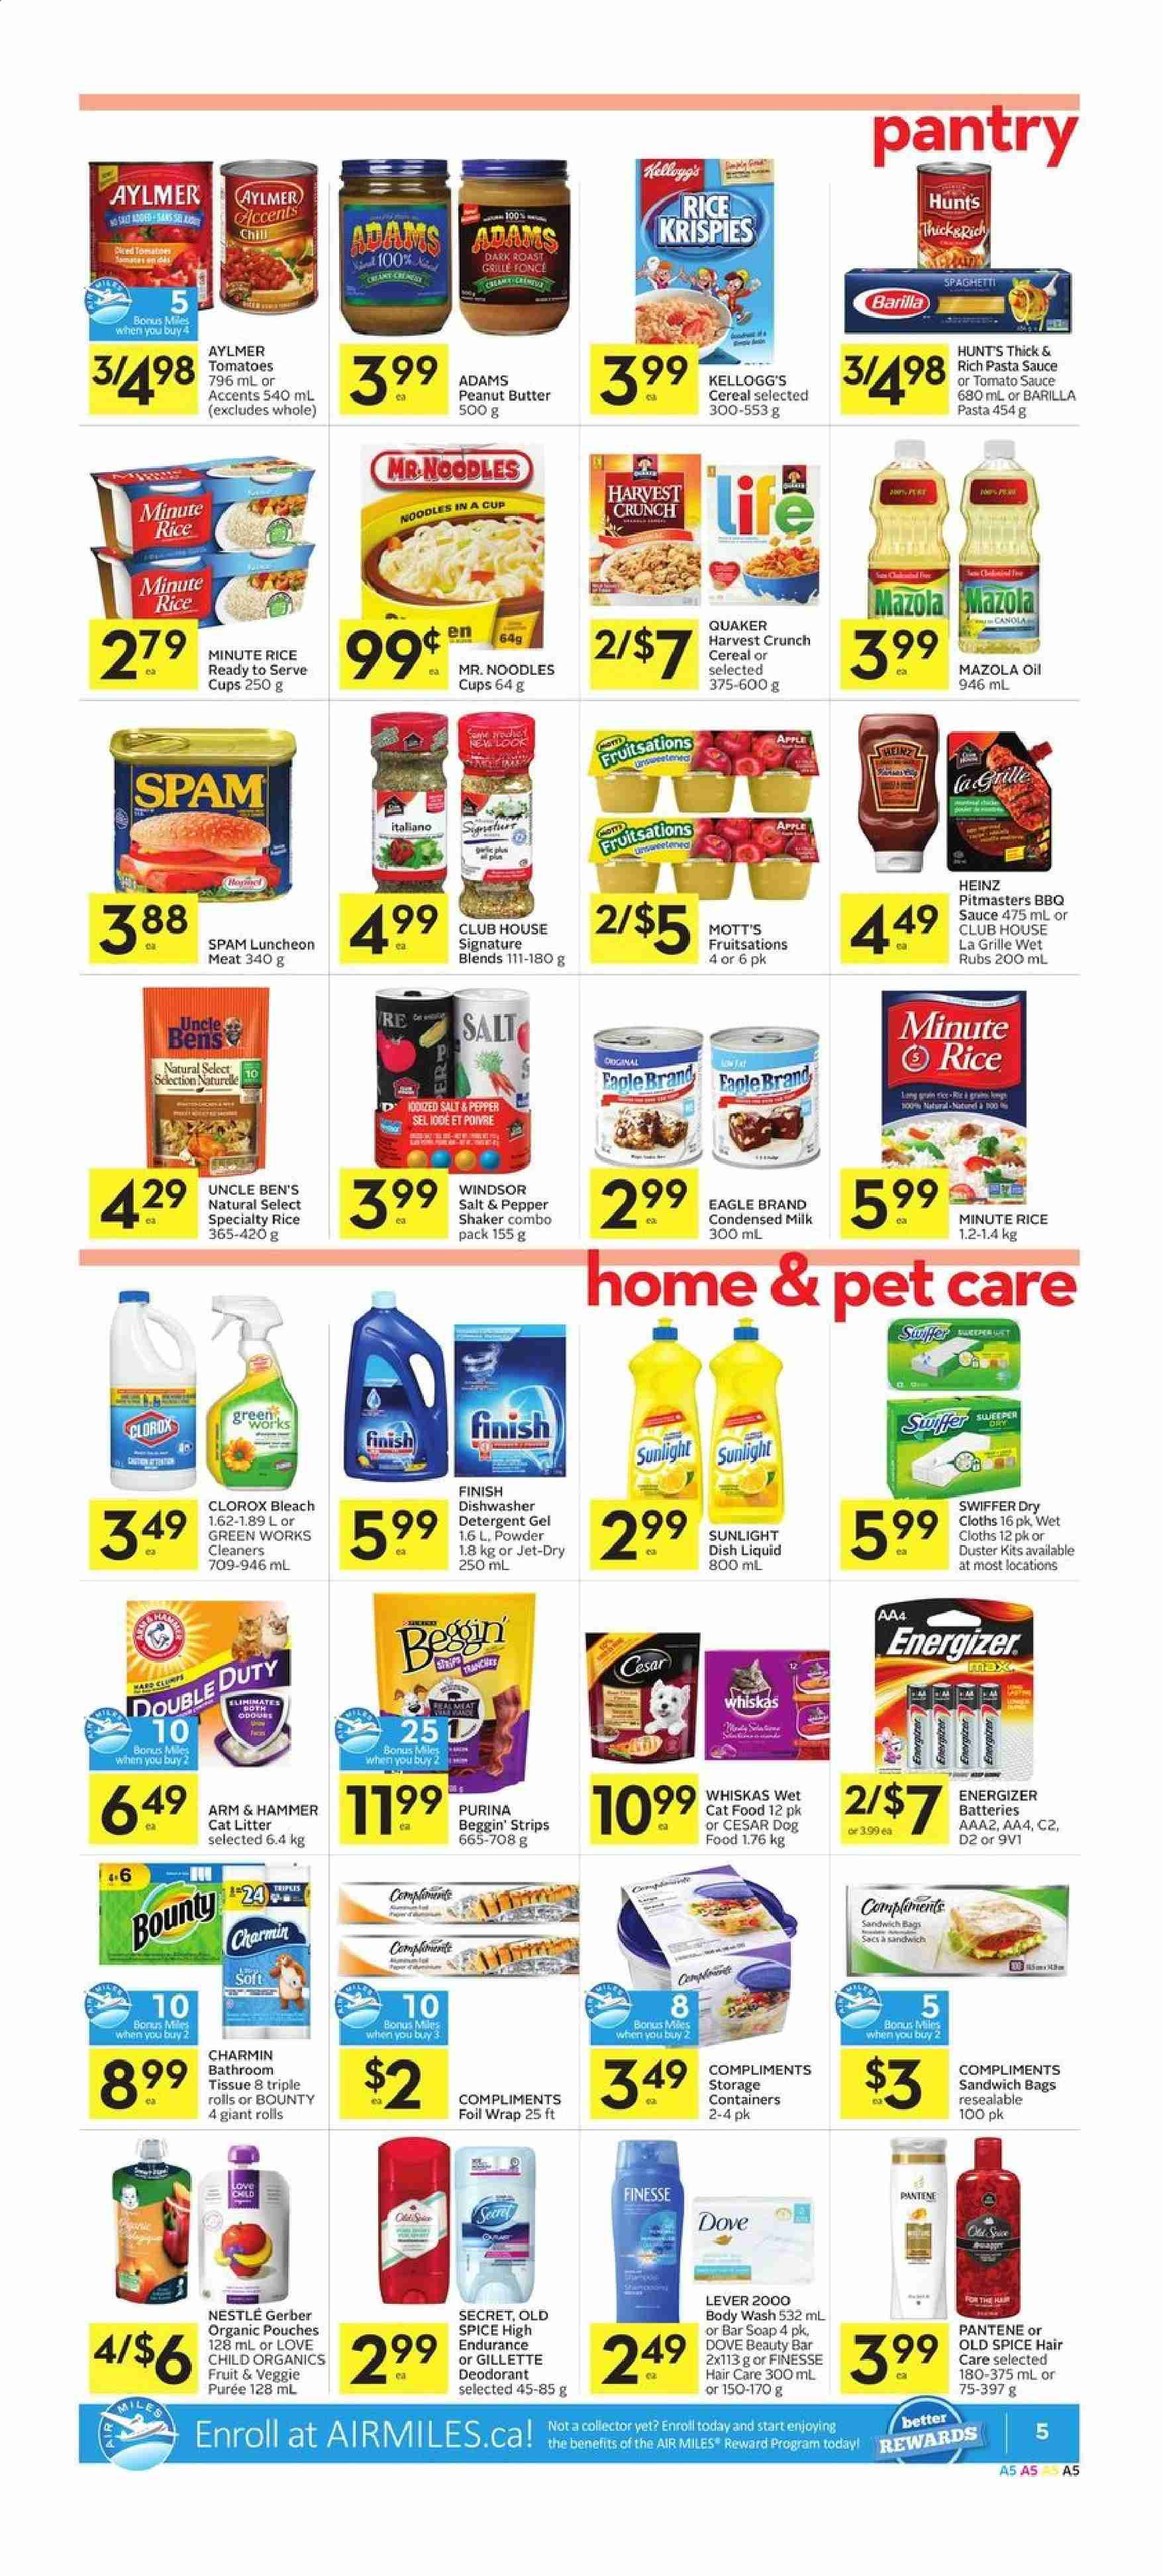 Foodland Flyer  - May 30, 2019 - June 05, 2019. Page 5.